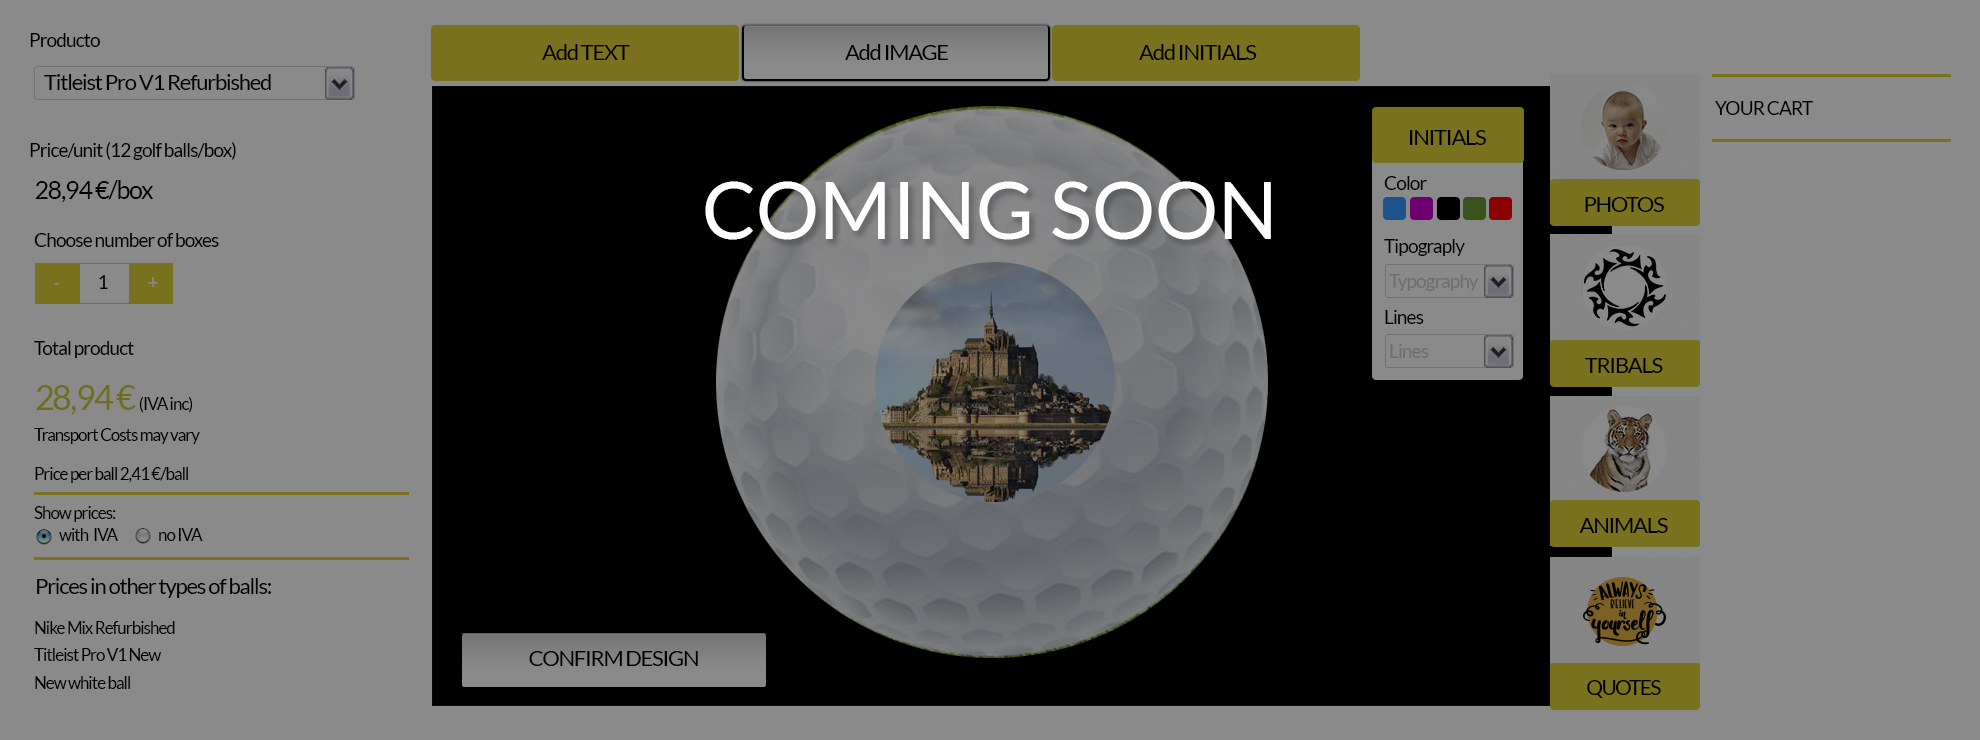 Golf balls customizer with logos and pictures